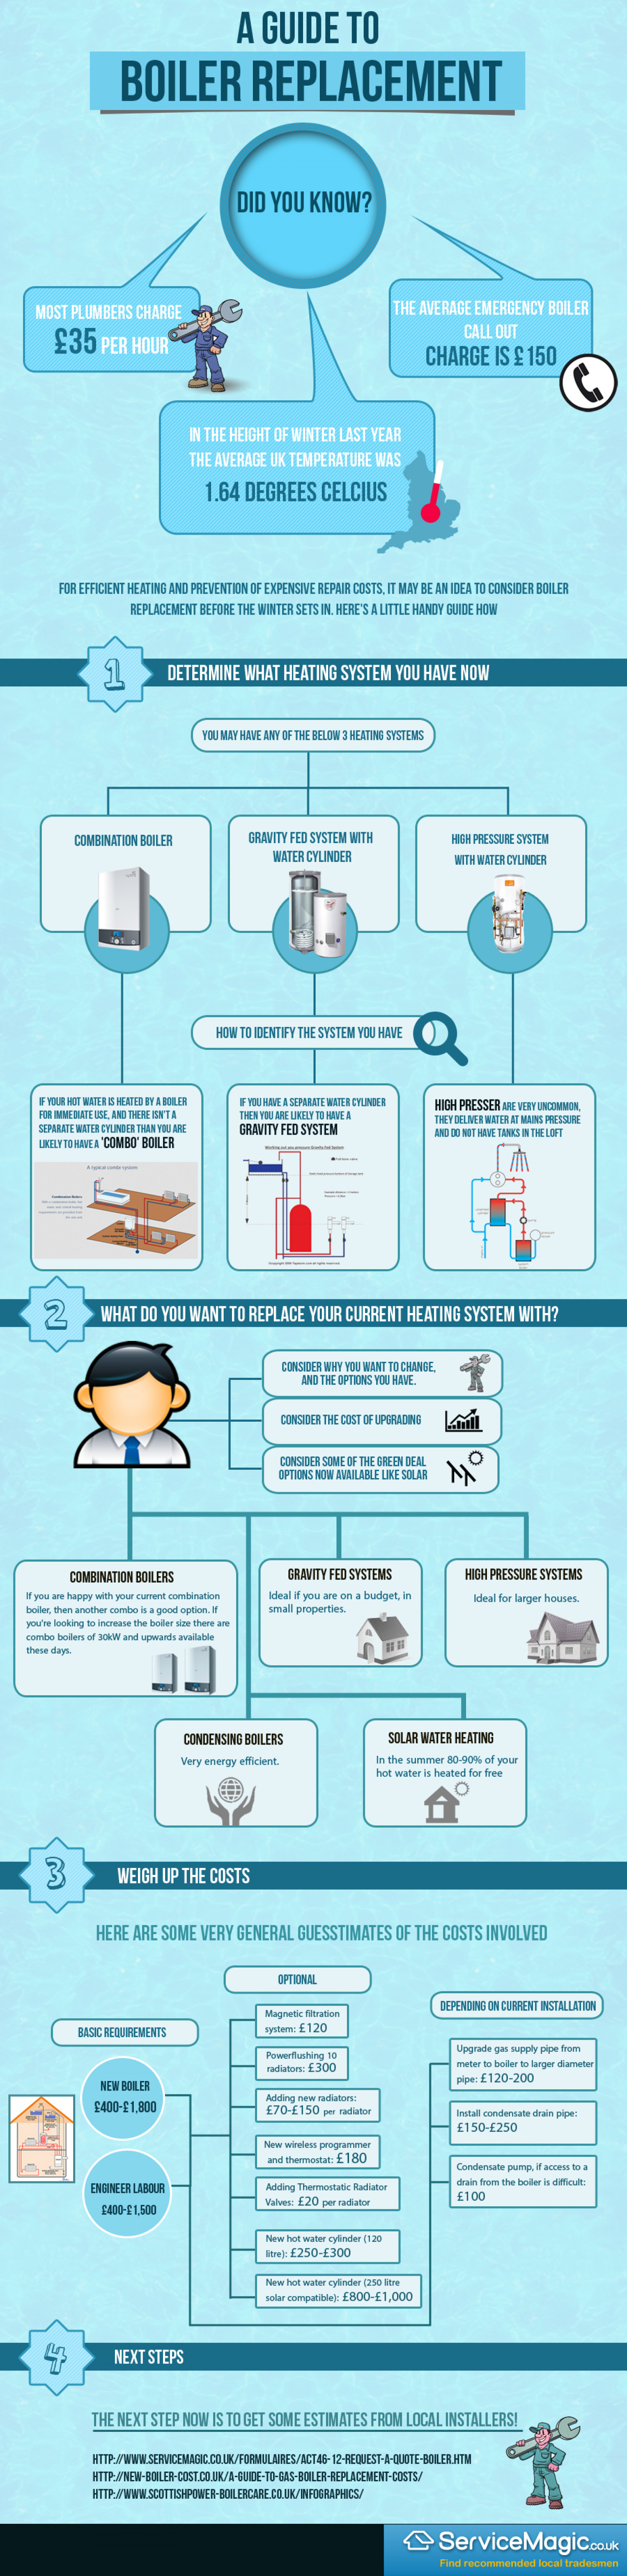 A Guide to Boiler Replacement Infographic